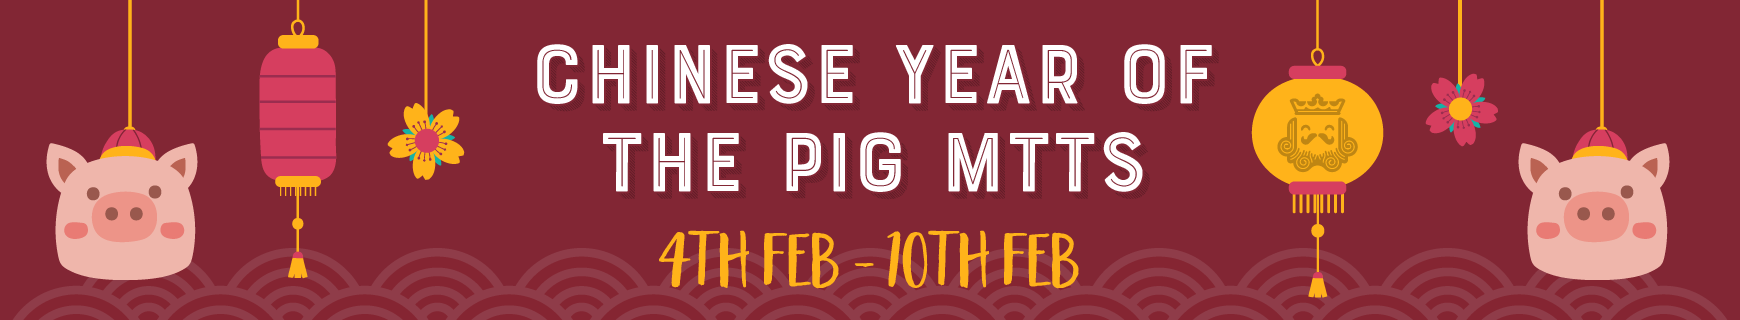 Chinese year of the pig mtts %28870 x 160%29 2x